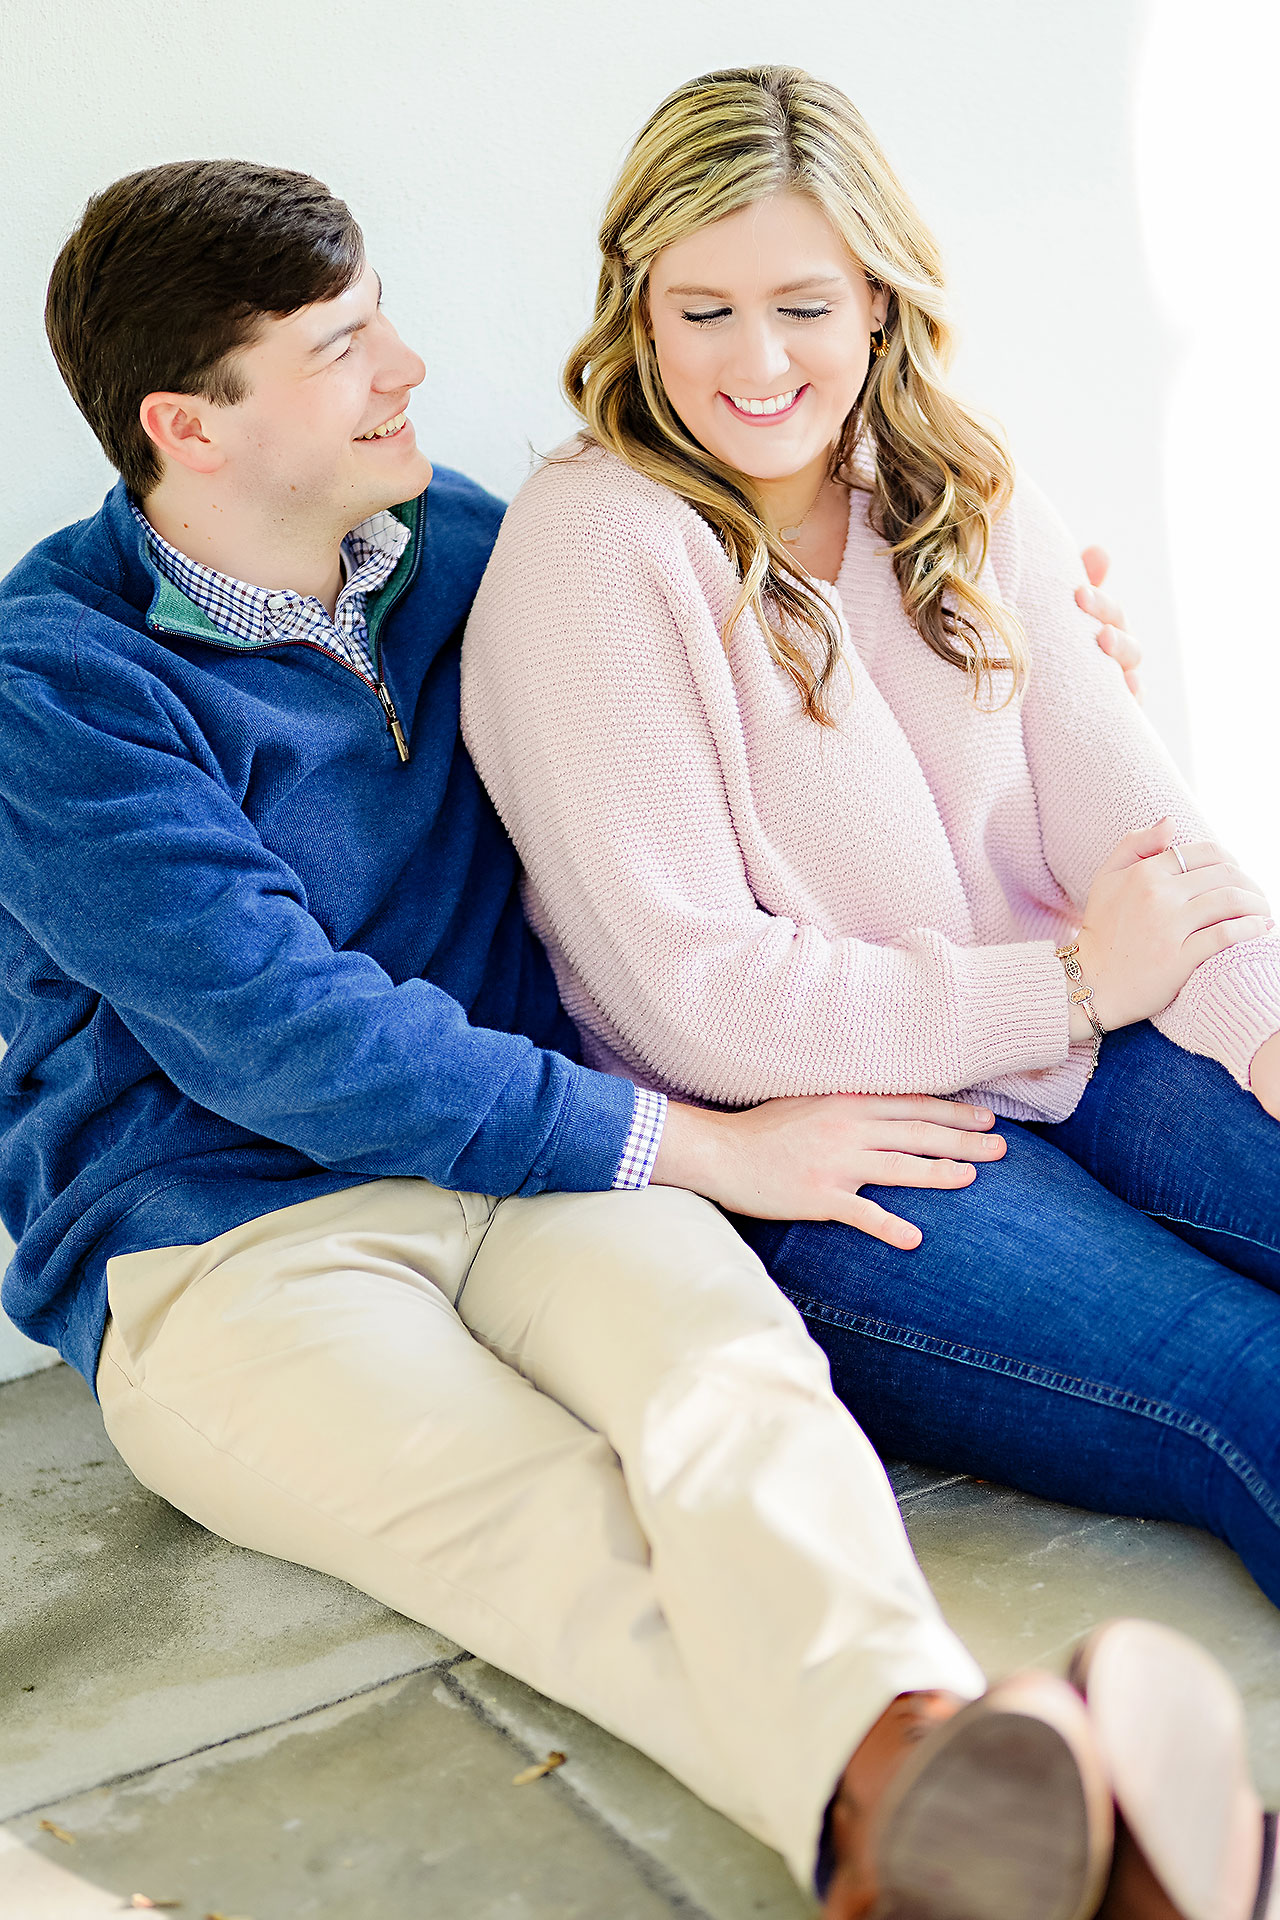 Taylor Case Newfields Engagement Session 060